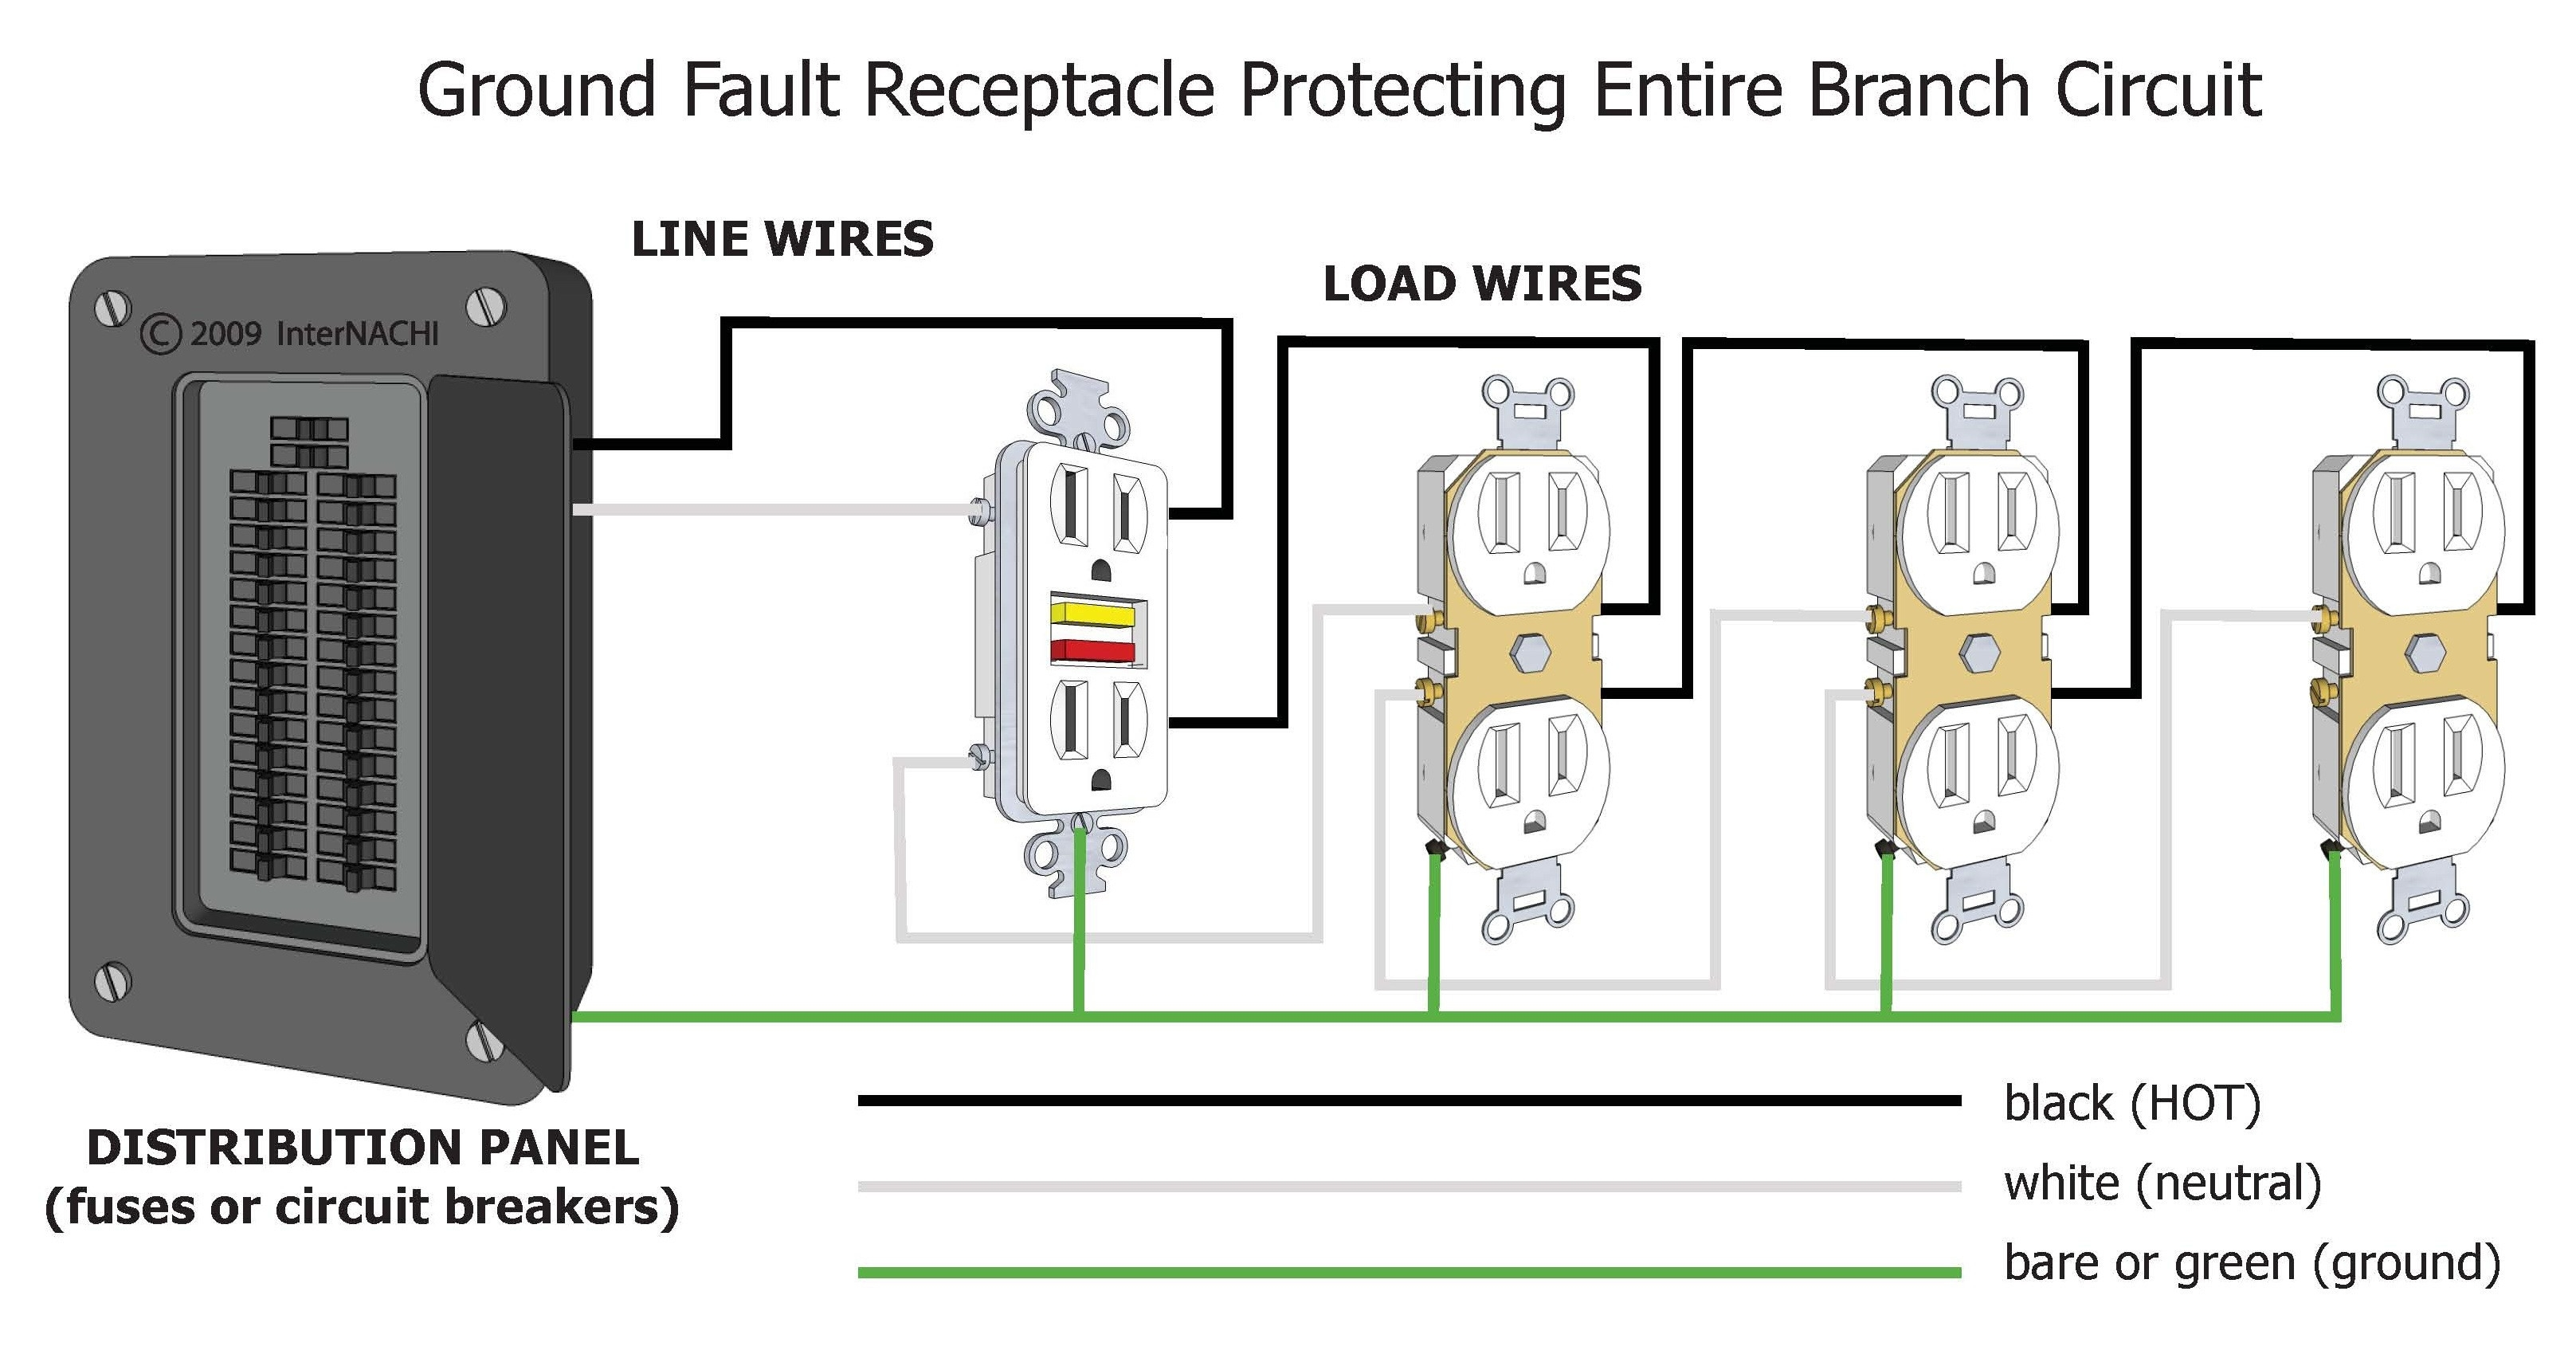 circuit breaker wiring diagram Collection-Wiring Diagram Gfci Fresh Gfci Wiring Diagram Without Ground Valid Gfci Circuit Breaker Wiring 13-k